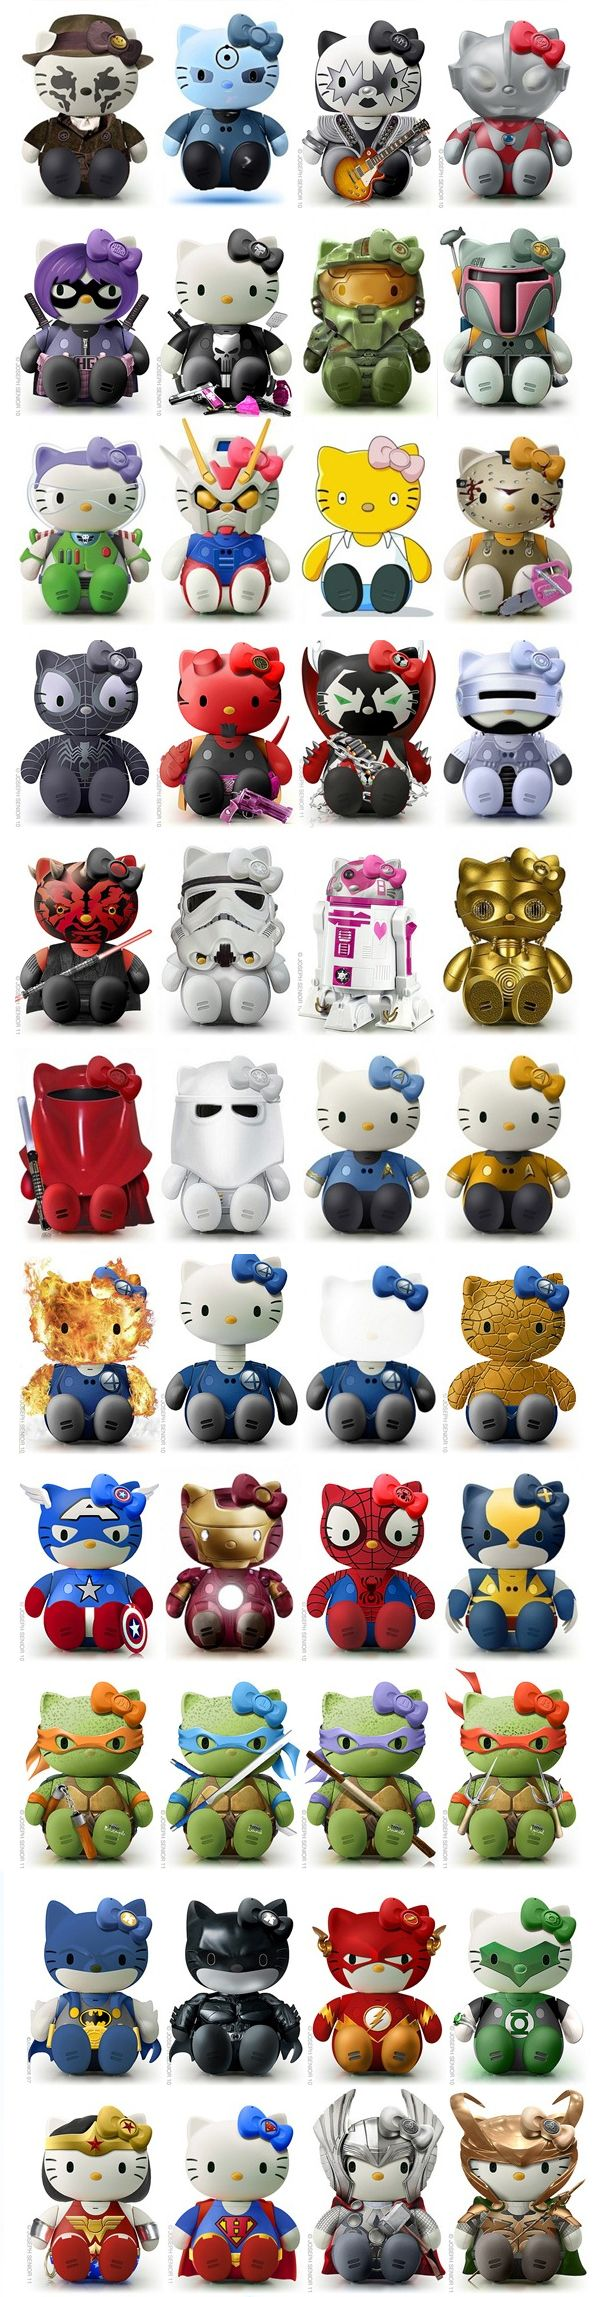 nerd hello kitty - I dont really love Hello kitty...  but I'd collect these!